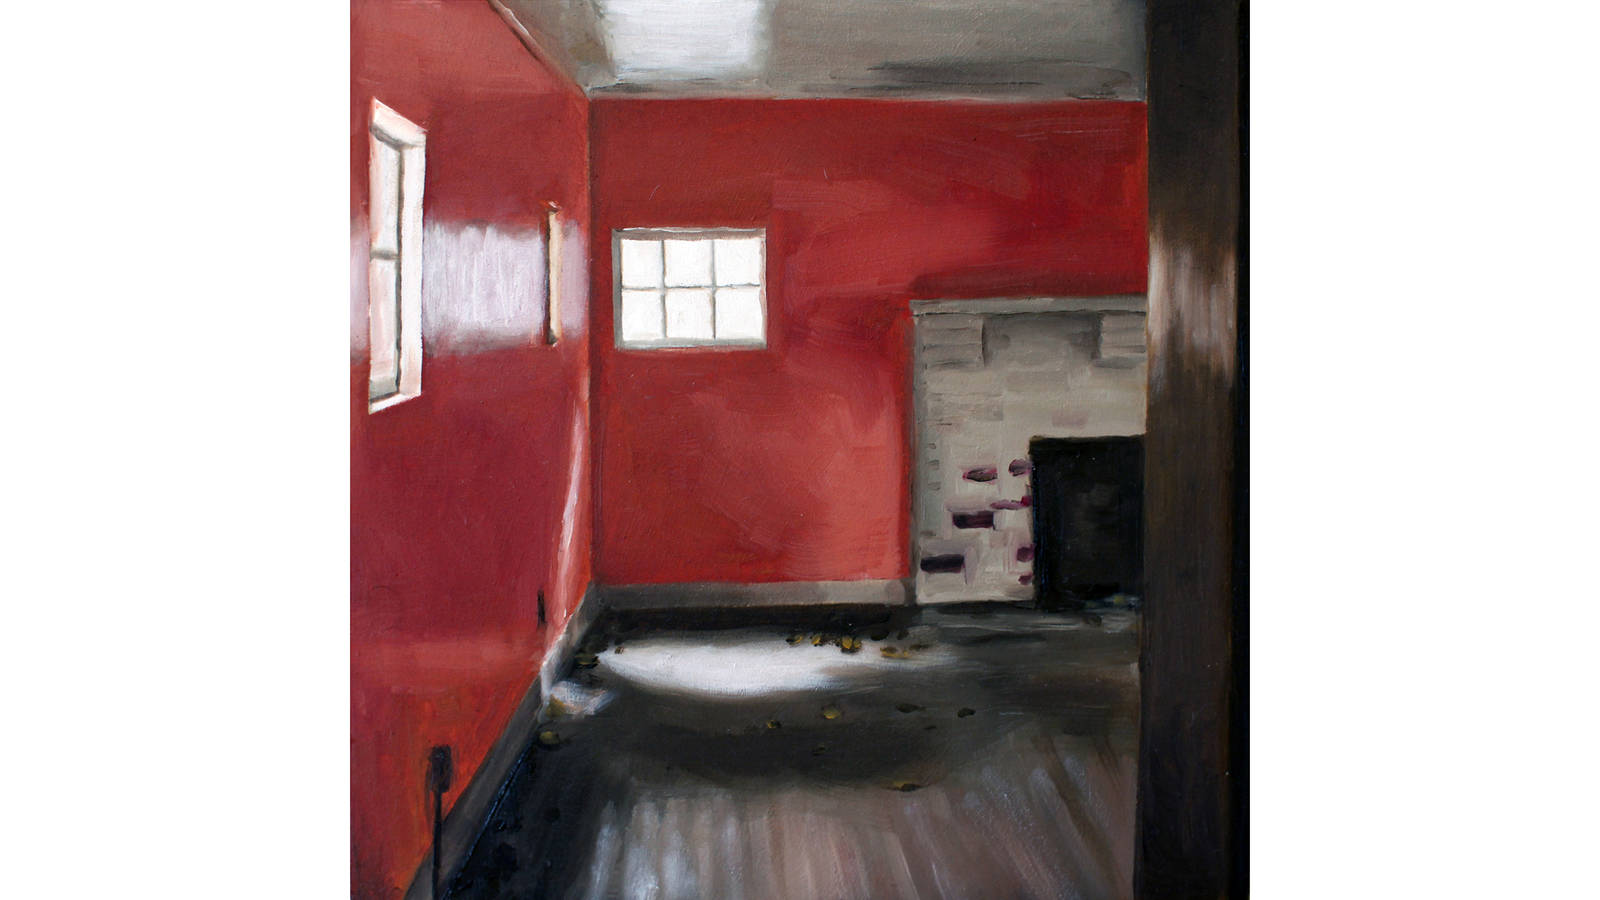 """<h3 style=""""text-align: center; padding: 50px;""""><span class=""""text-Intro-style"""">Staff at Great Smoky Mountains National Park and a nonprofit partner are working to preserve 19 Elkmont district homes, many of which have been vacant for more than two decades. Oil on wood, 2020.</span></h3>"""